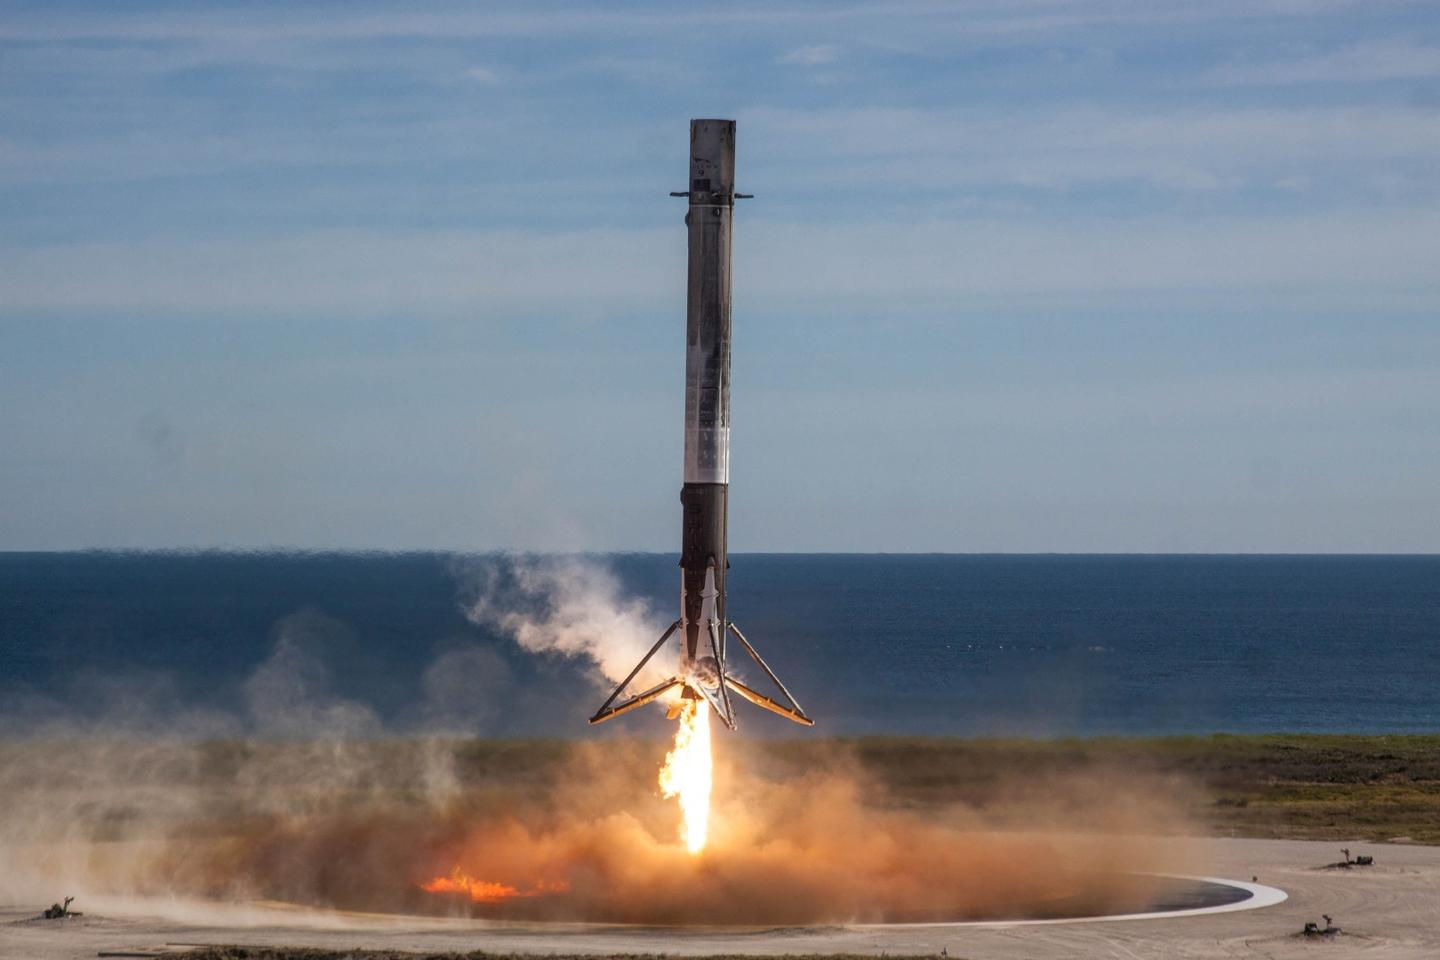 Falcon 9 booster lands after launching the Dragon spacecraft into space